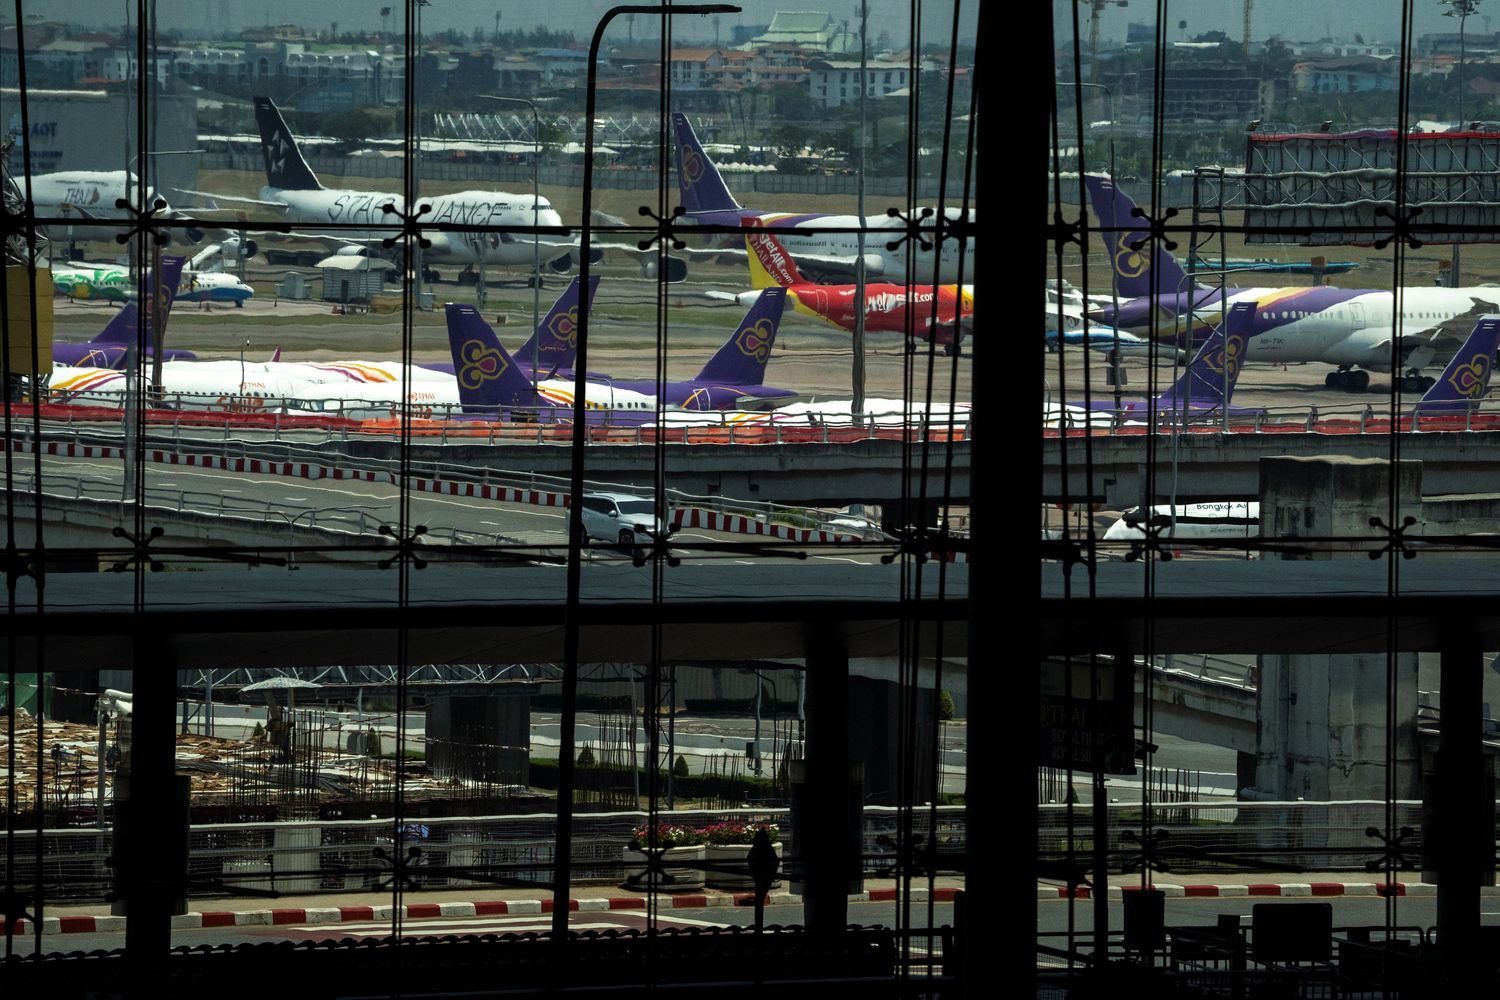 THAI planes park at the tarmac of the Suvarnabhumi airport in Bangkok on April 4. (Reuters photo)